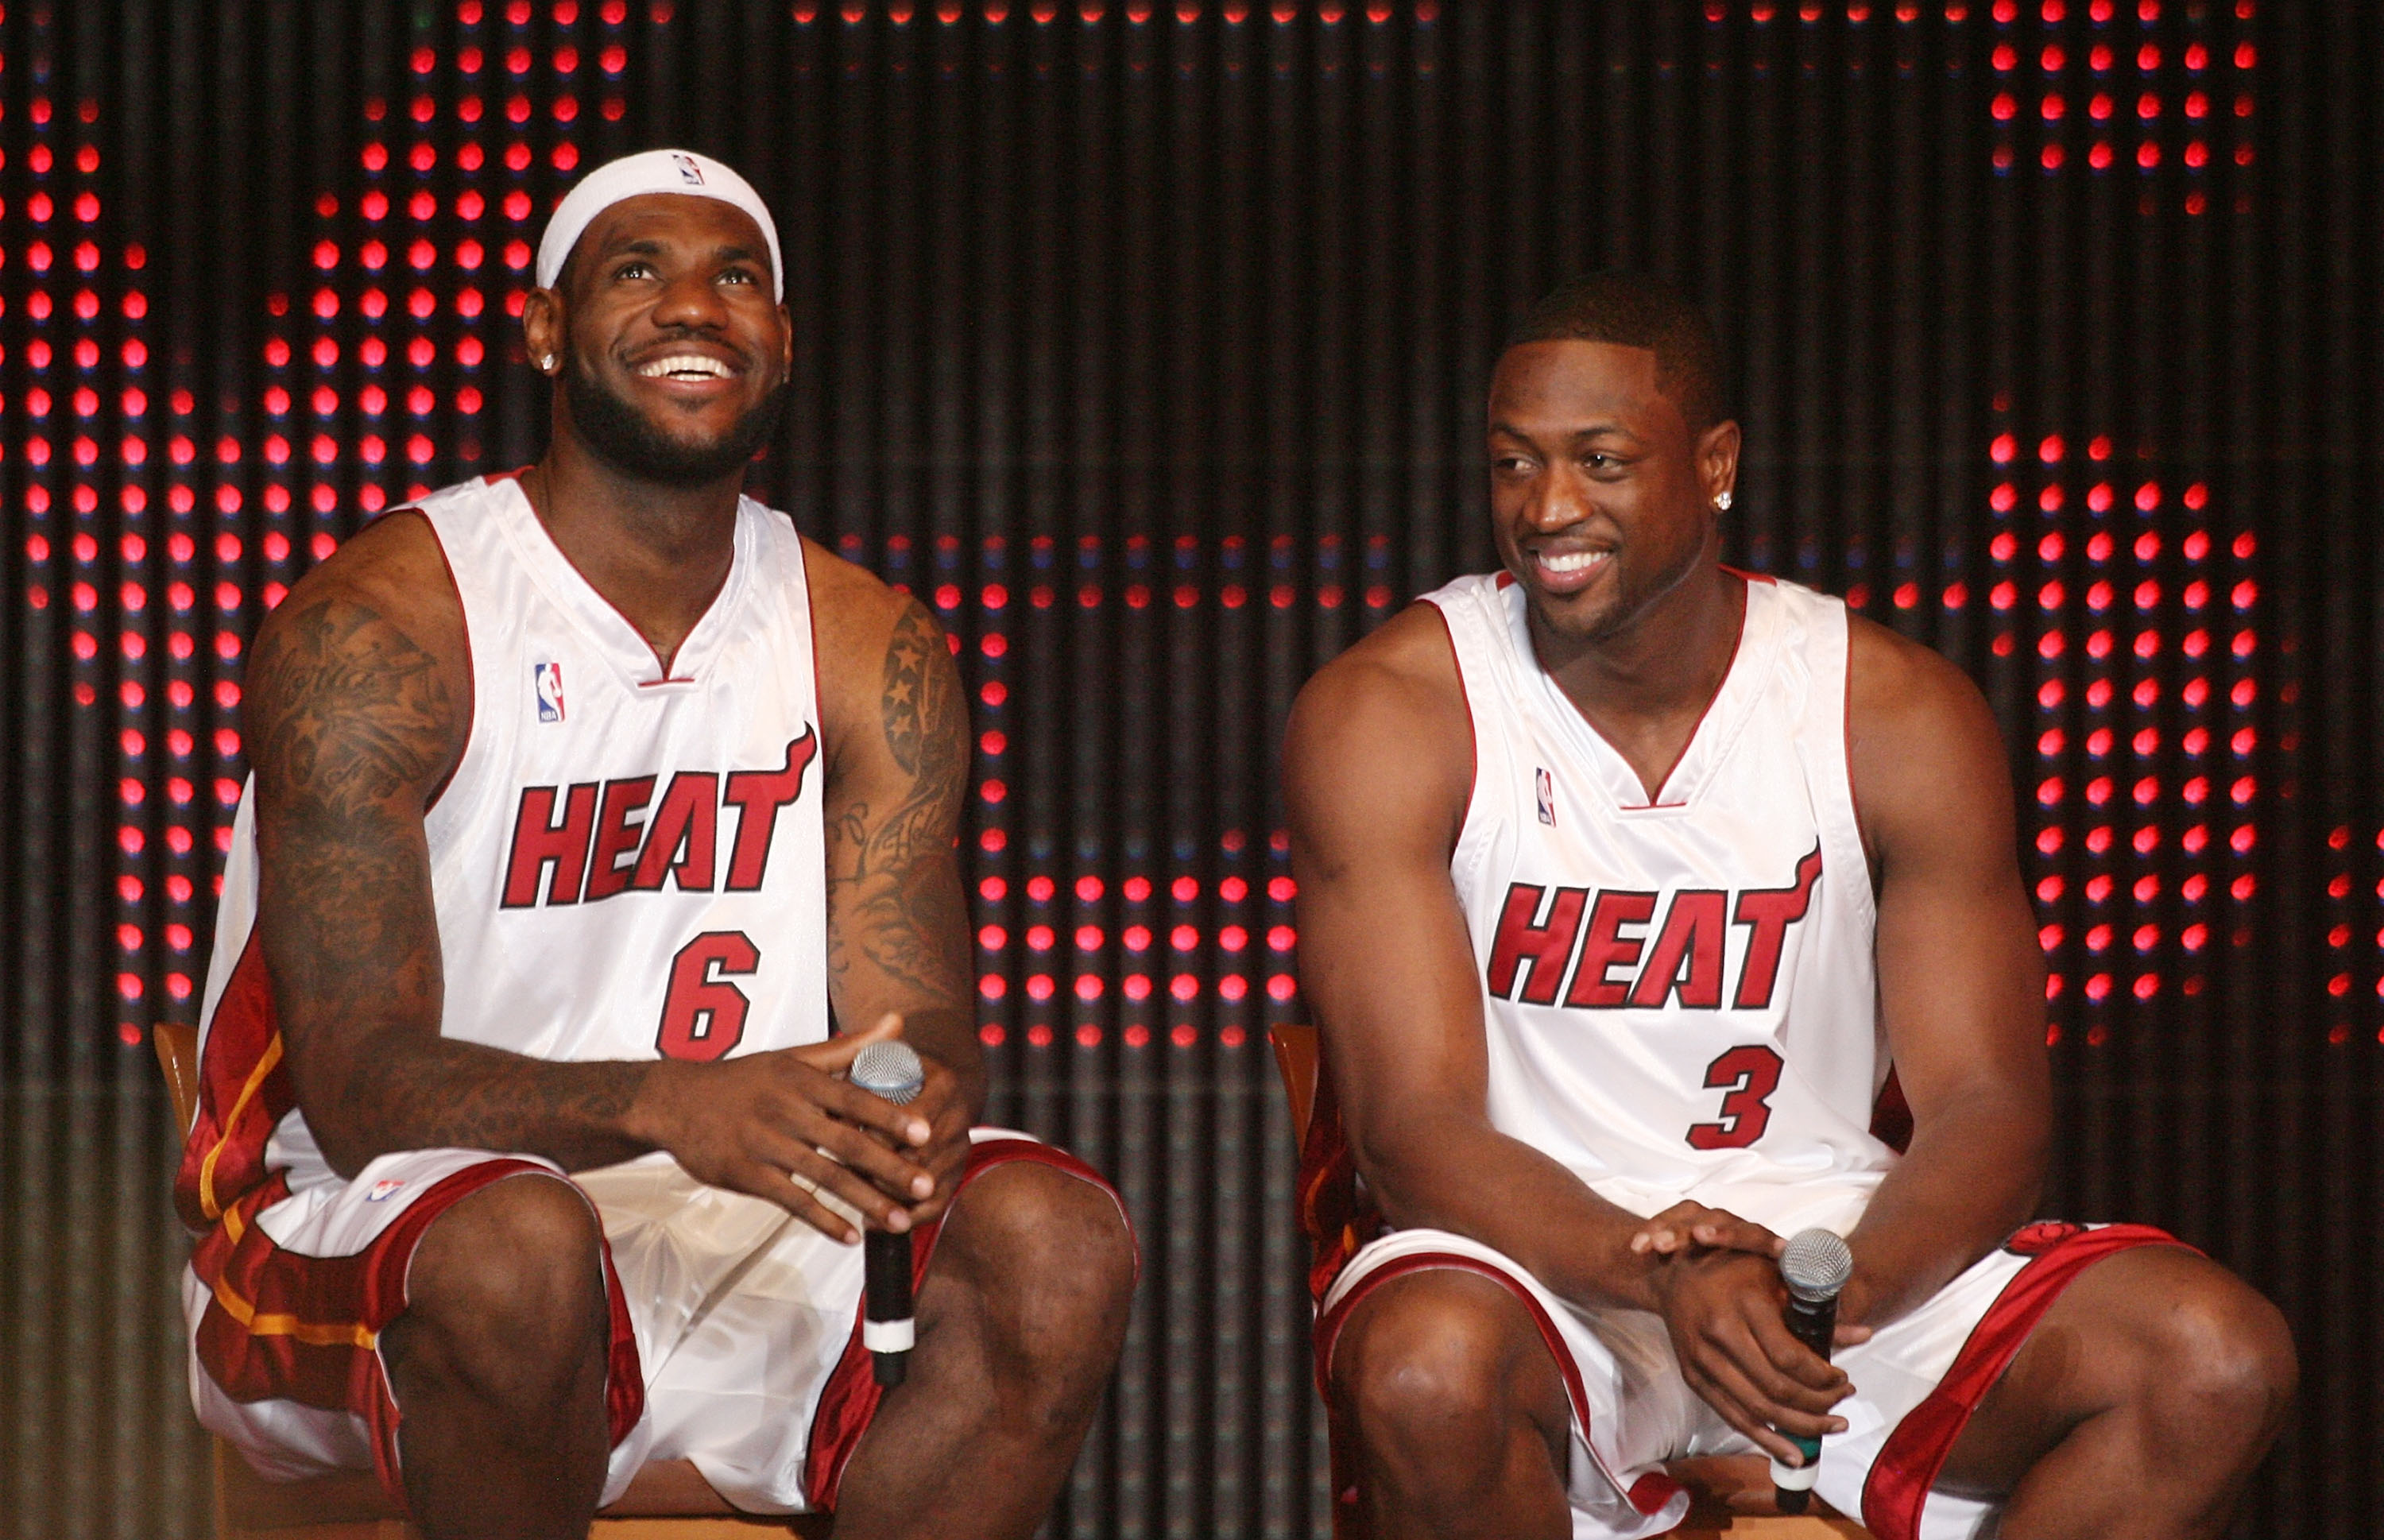 MIAMI - JULY 09:  (L-R) LeBron James #6 and Dwyane Wade #3 of the Miami Heat are introduced during a welcome party at American Airlines Arena on July 9, 2010 in Miami, Florida.  (Photo by Marc Serota/Getty Images)